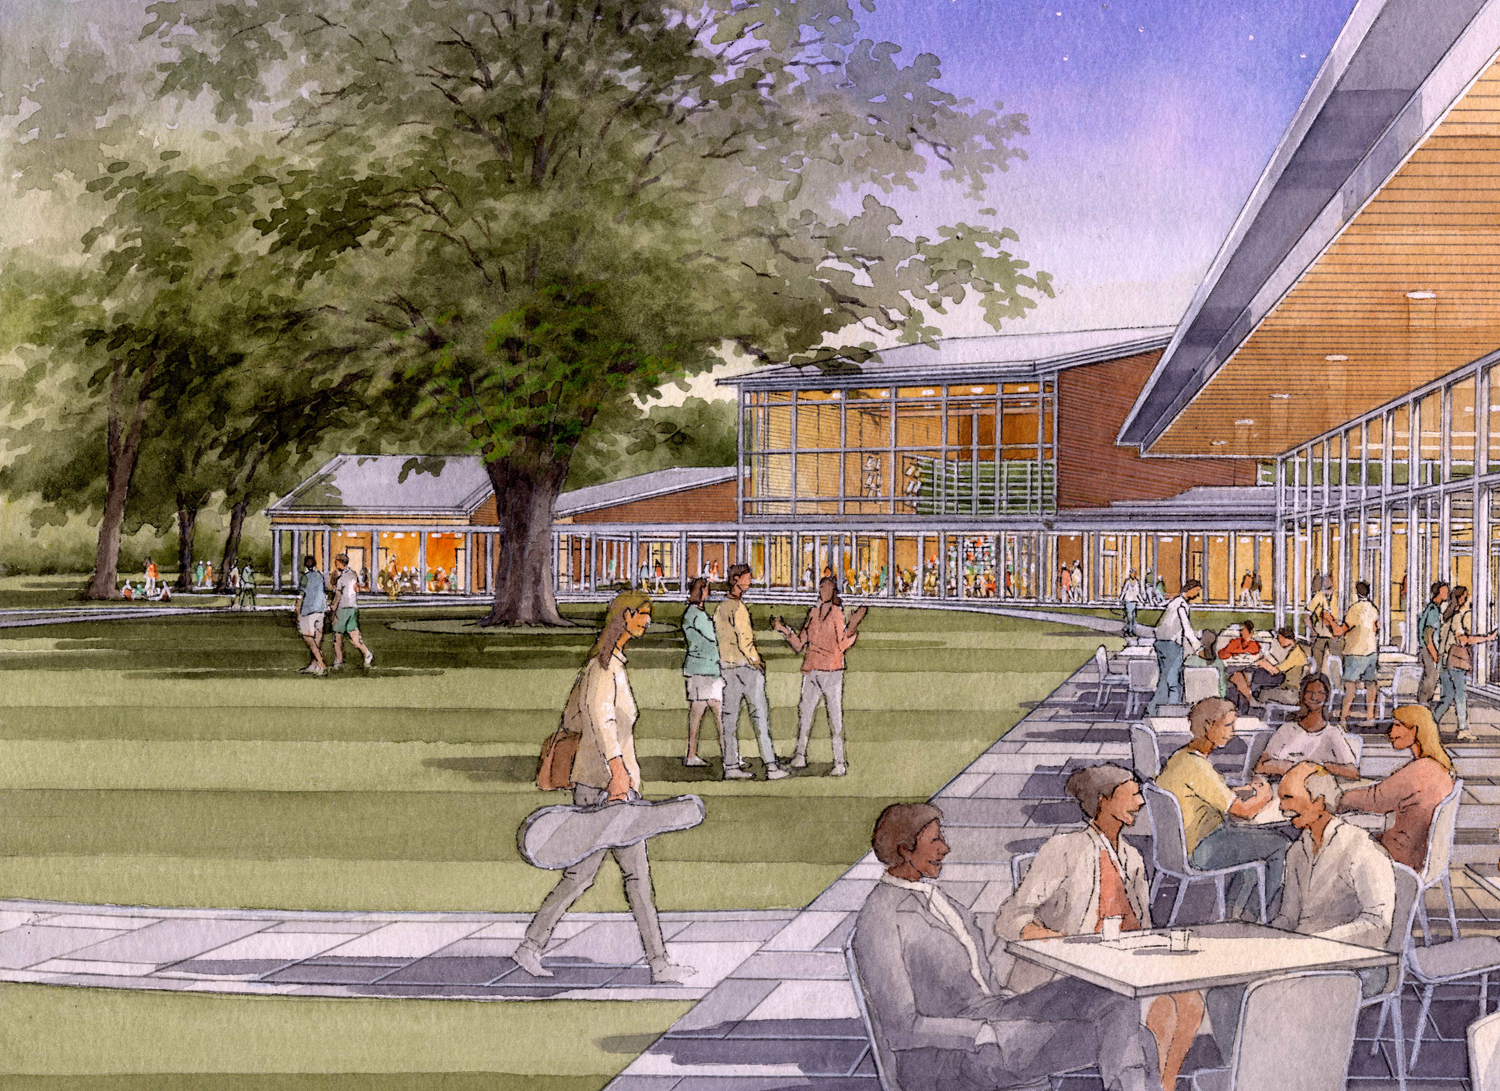 A rendering of what the new Tanglewood pavilions would look like. (Courtesy Boston Symphony Orchestra)